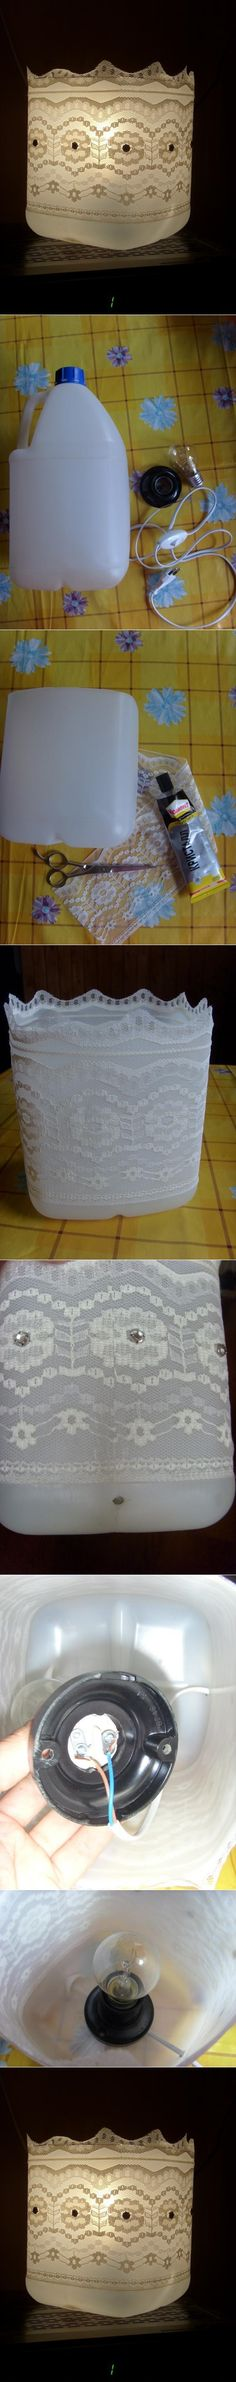 lamp from plastic bottle tutorial wedding decoration?